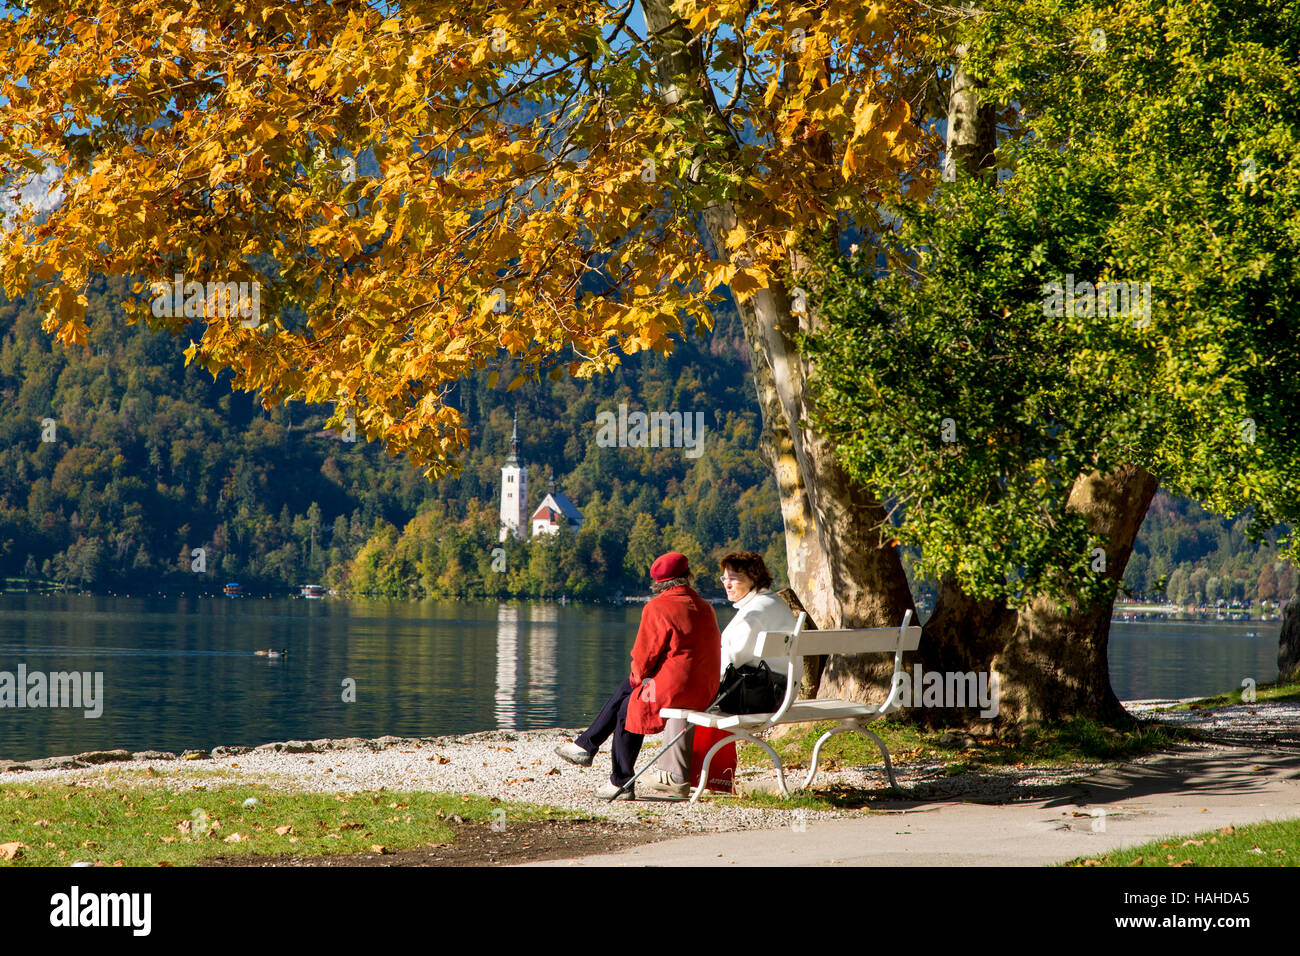 Two friends on a park bench with St. Marys Church of the Assumption beyond, Bled, Upper Carniola, Slovenia - Stock Image